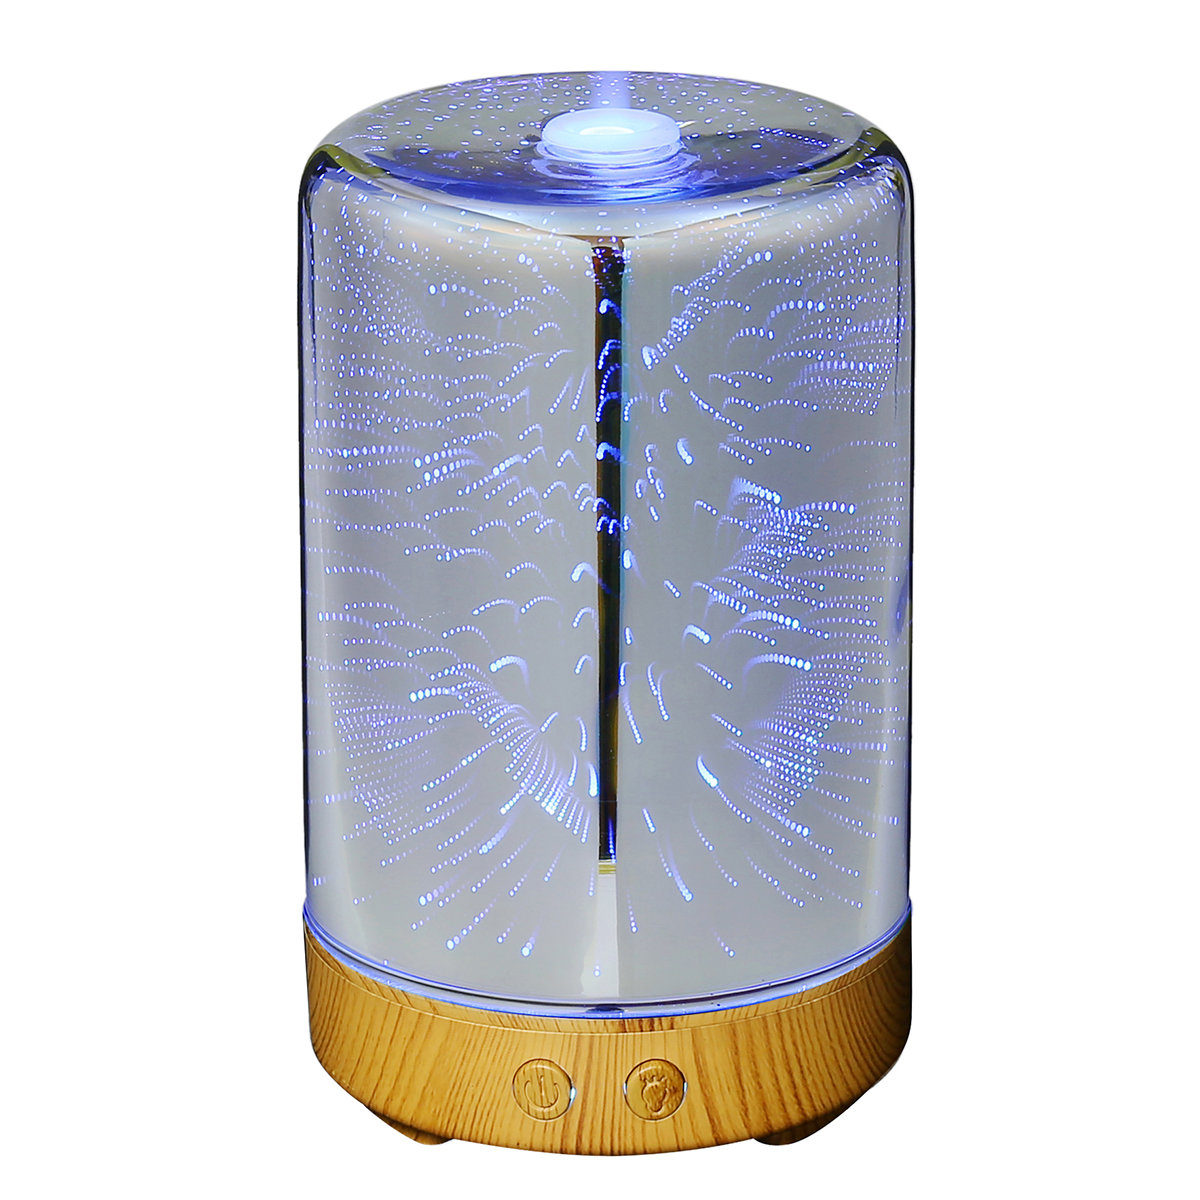 DecBest Fireworks Sky 3D Glass Aromatherapy Diffuser Cool Mist Humidifier Color Changing Night Light